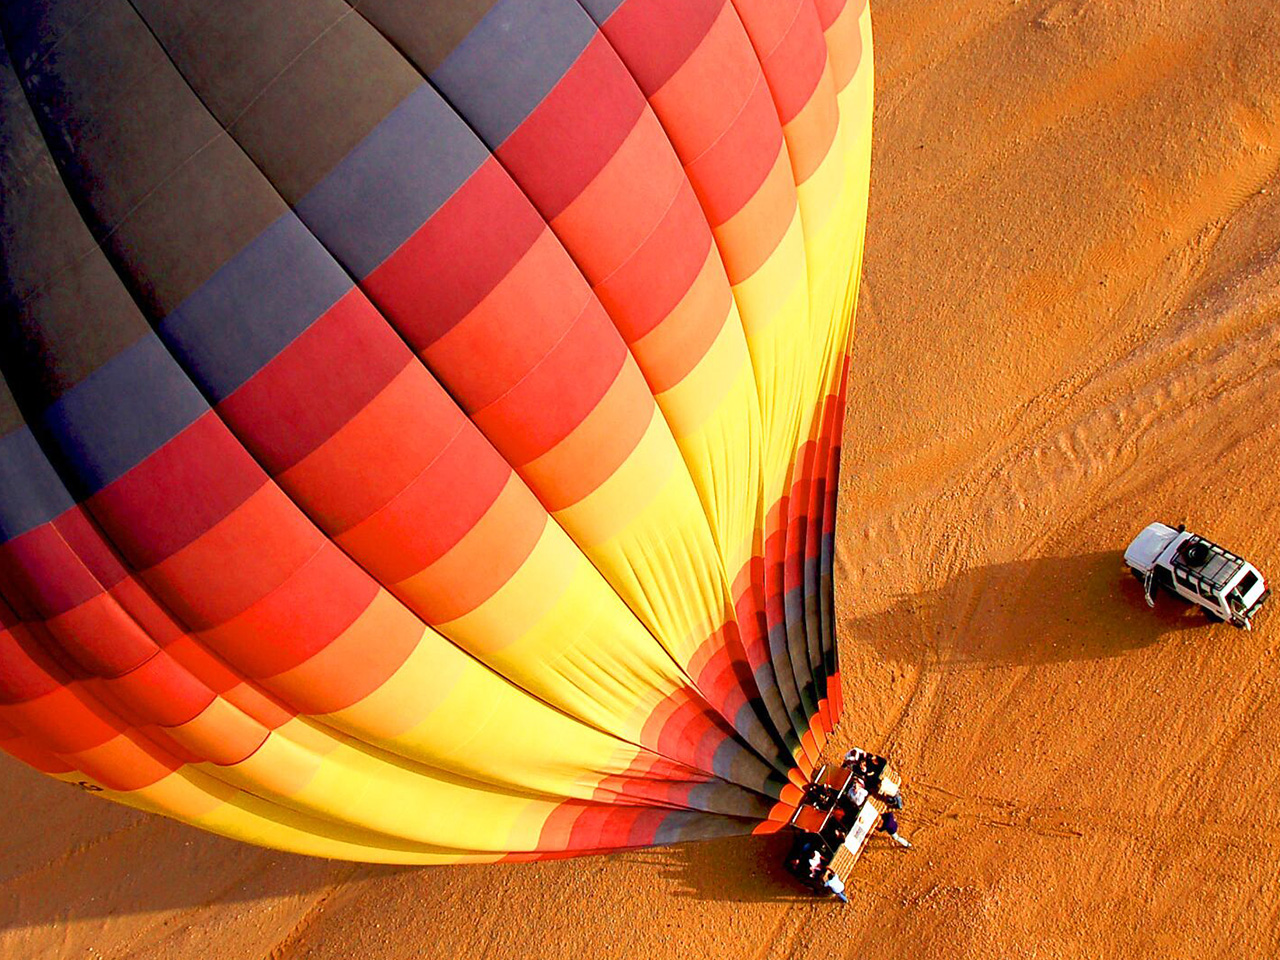 Hot air balloon desert Dubai tour